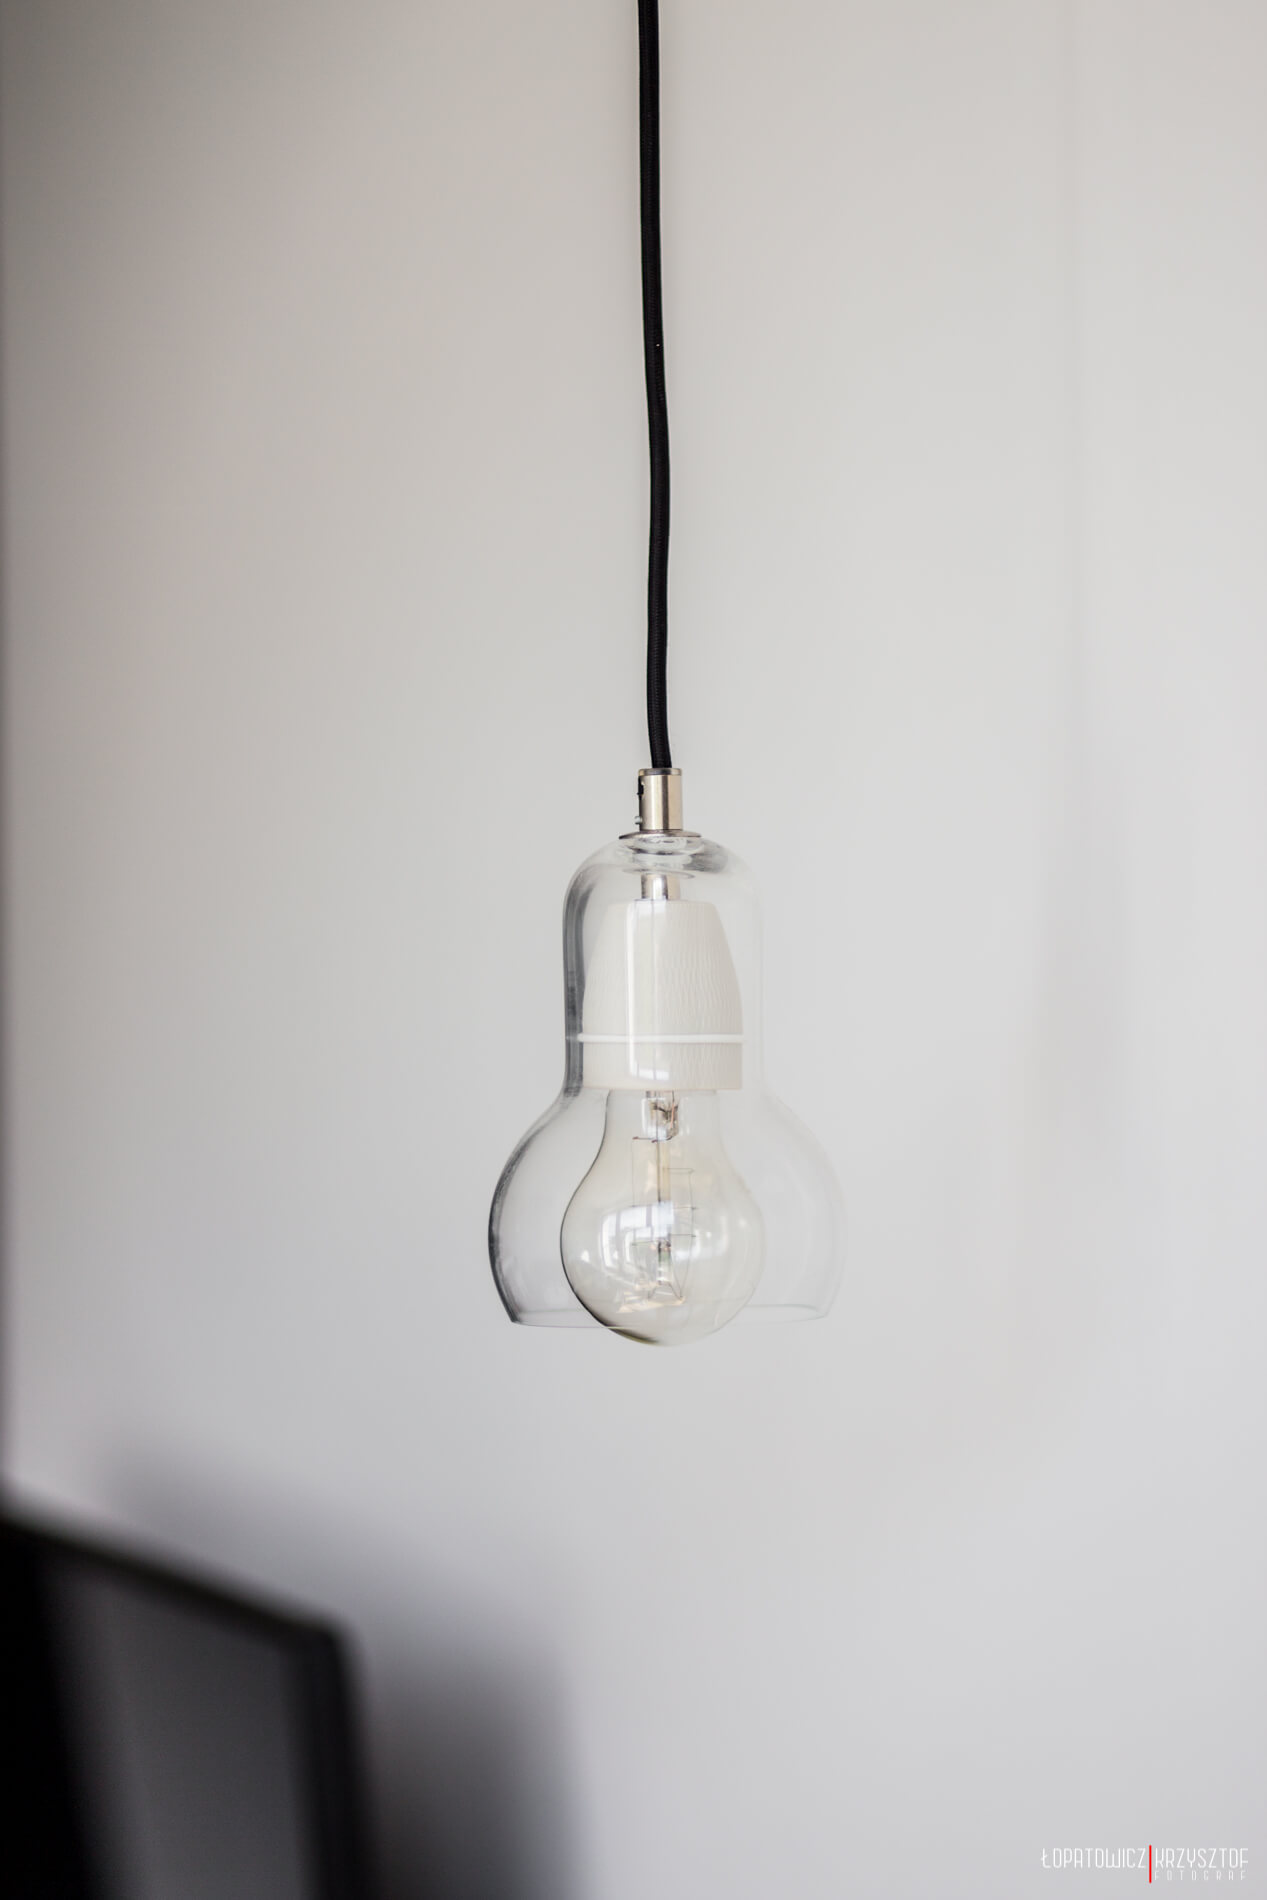 One of the singular light fixtures, this one features minimal glass wrap around a single bulb.